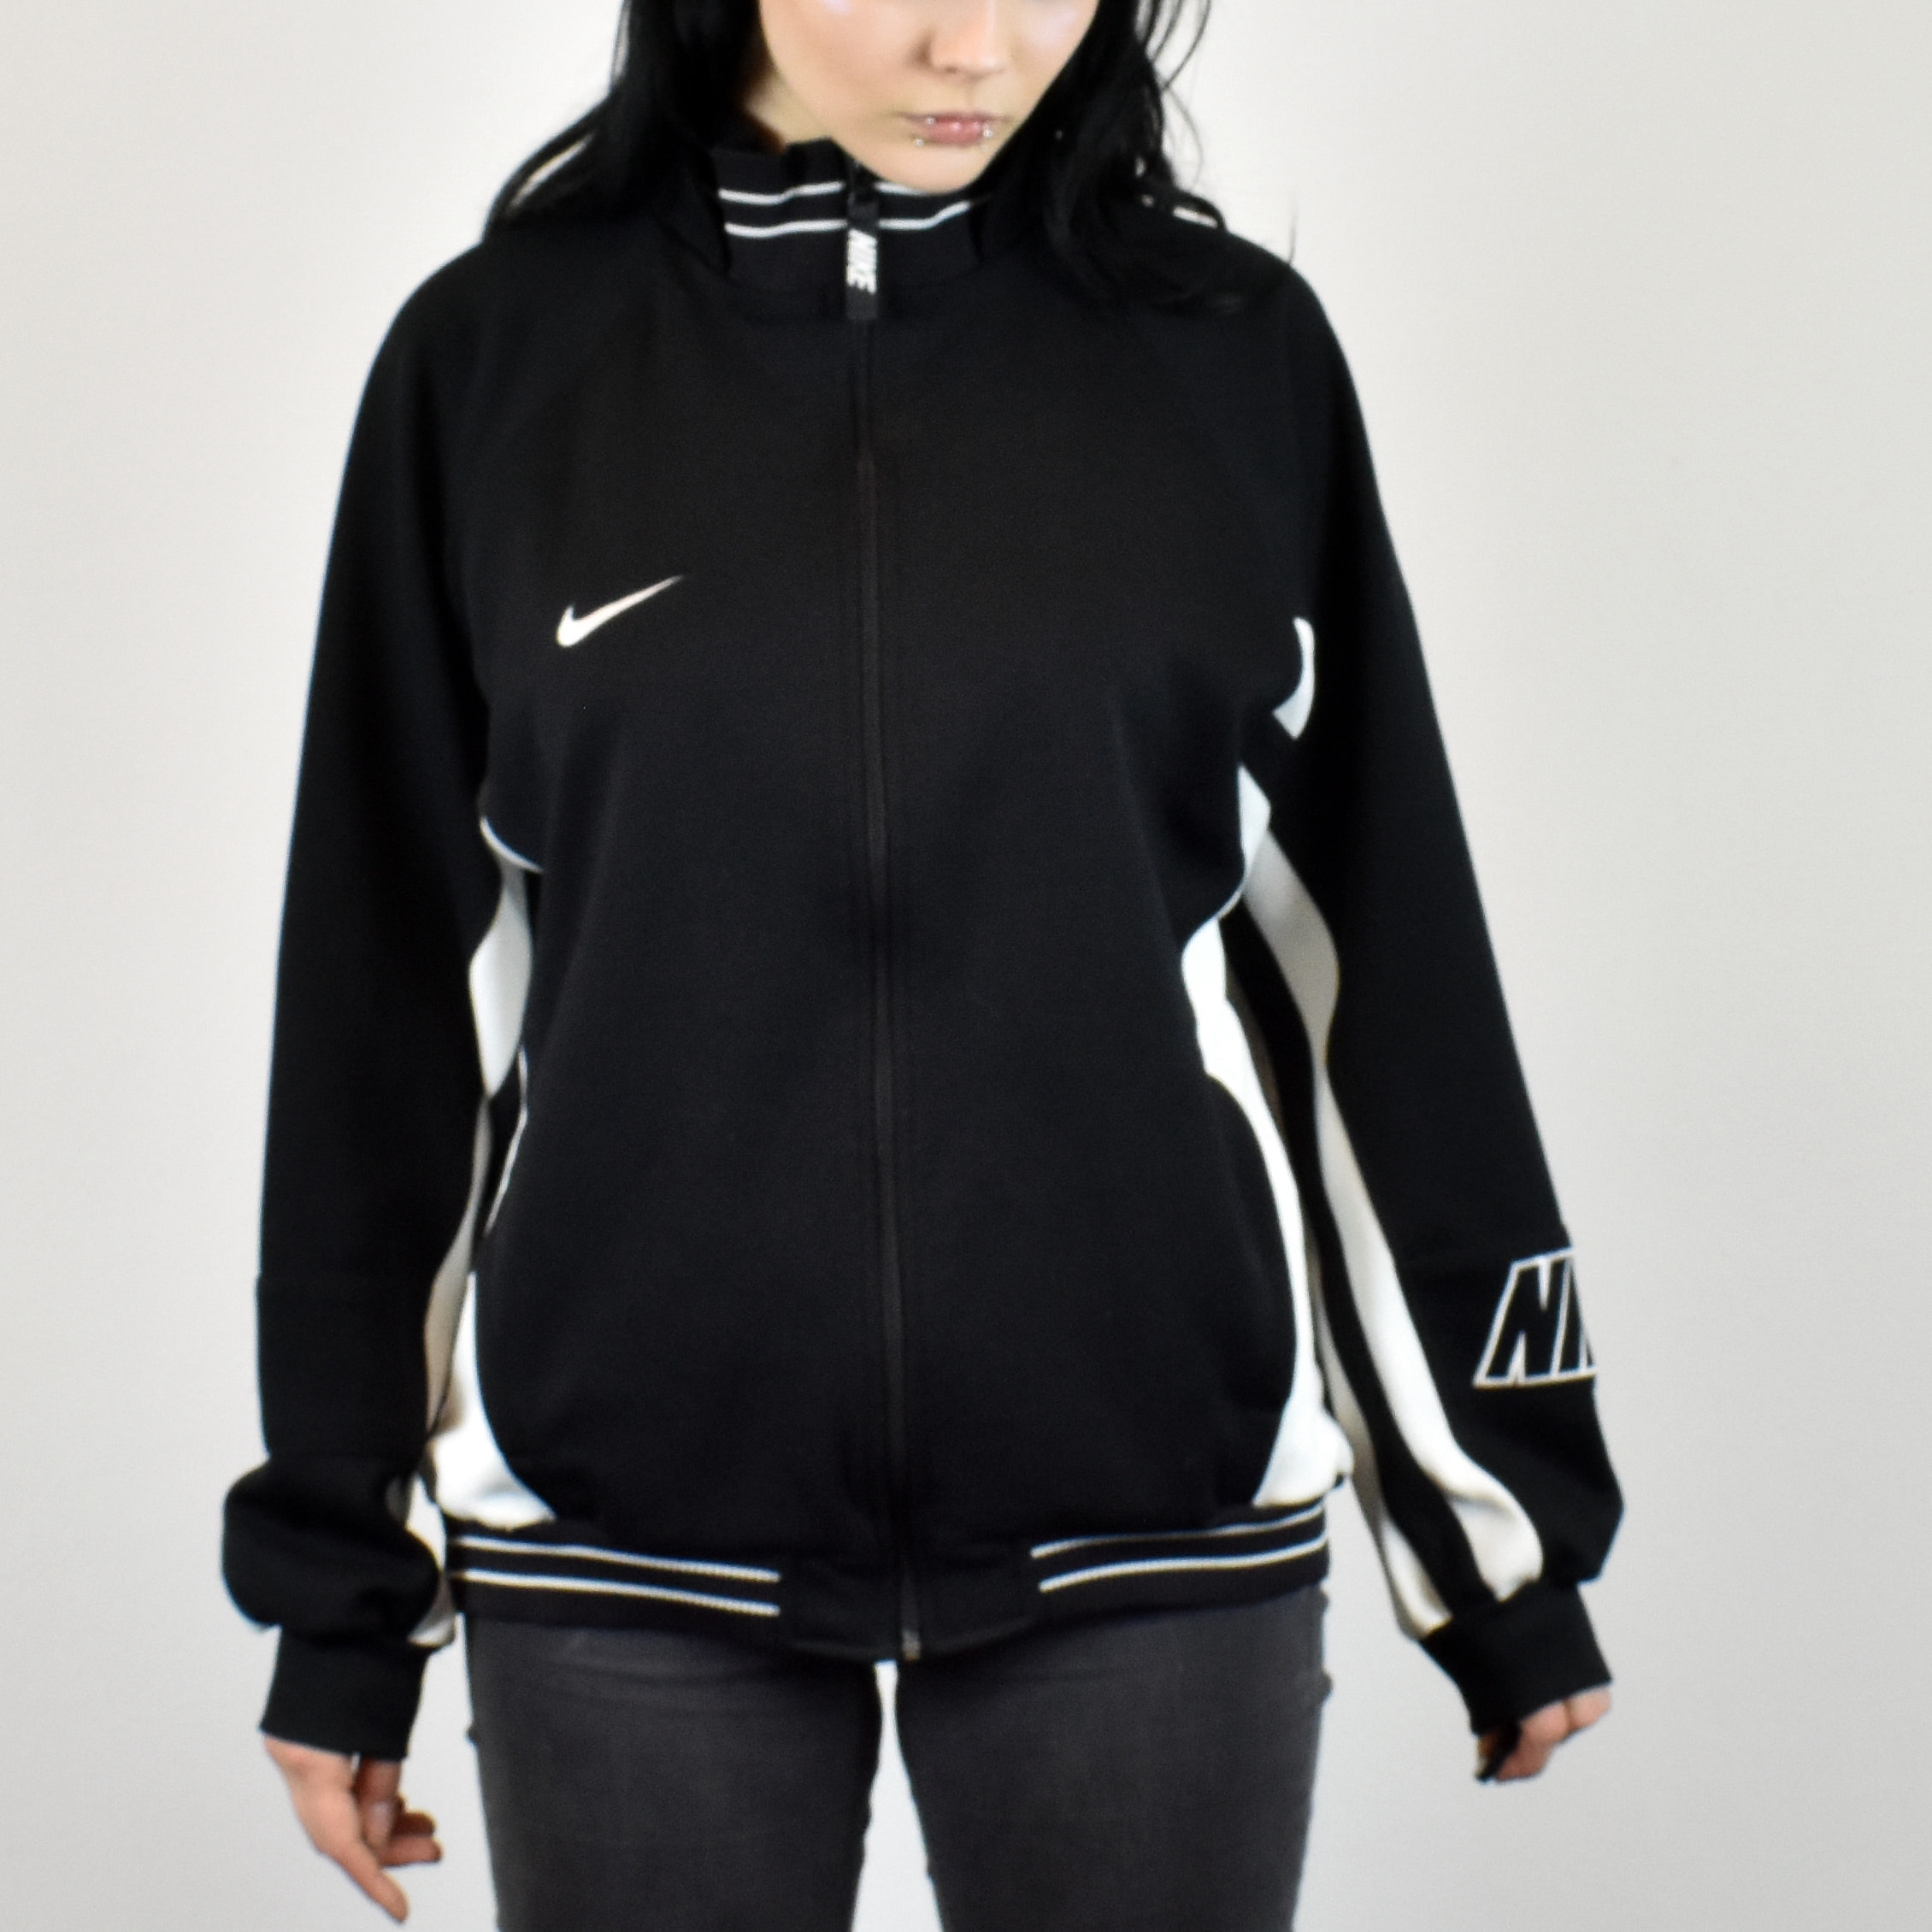 f6dd97feb32d Unisex Vintage Nike tracksuit track jacket in black and white size L